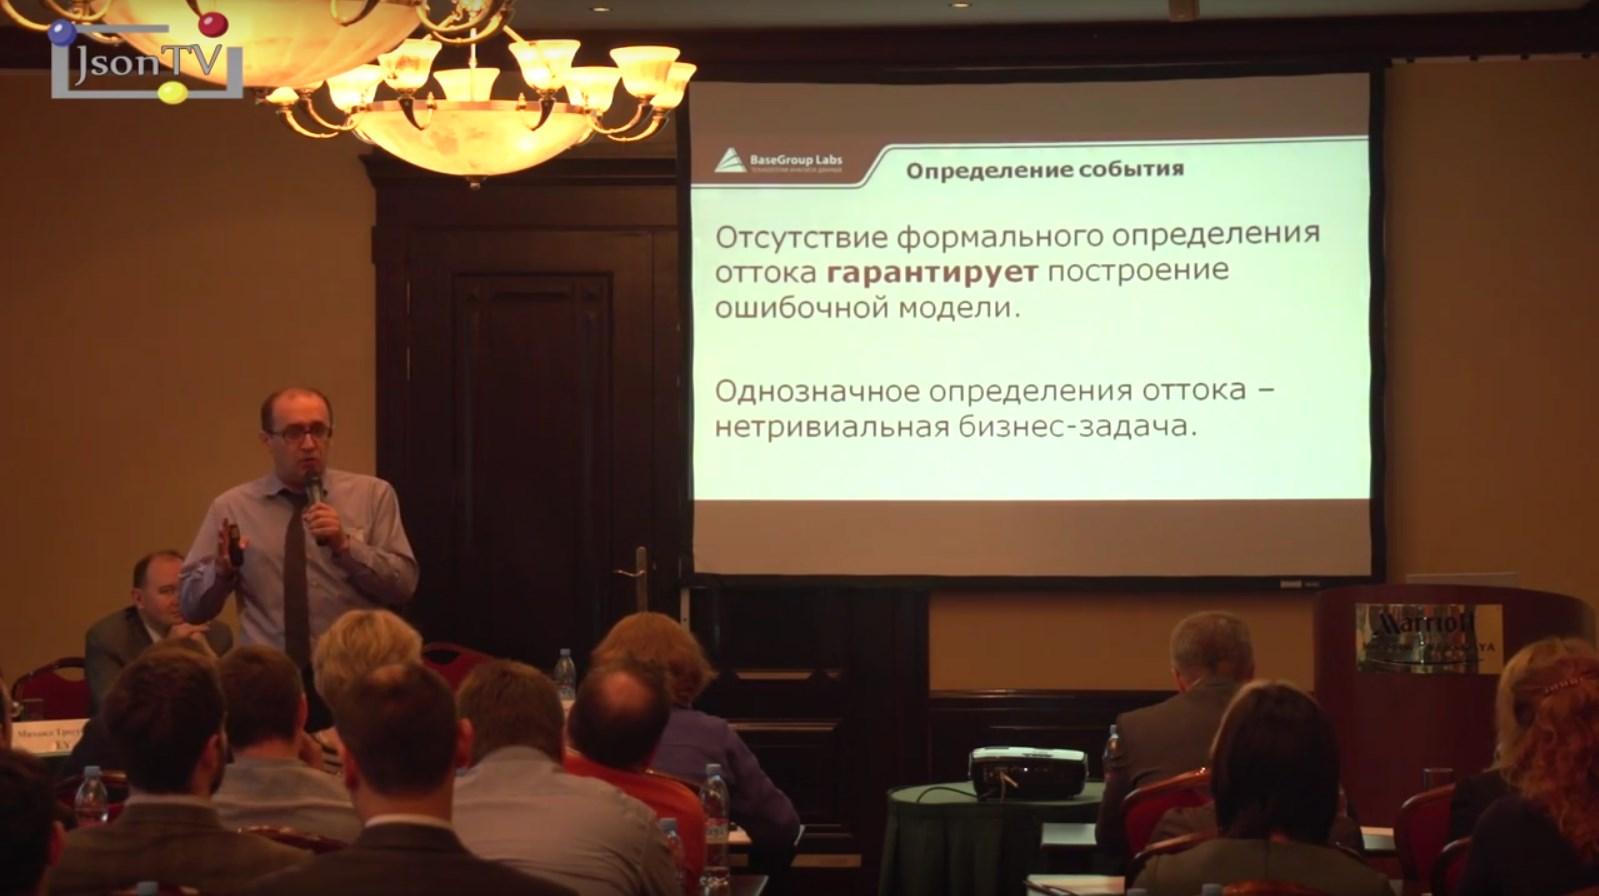 Connectica Lab. Telecoms Loyalty & Customer Data. Алексей Арустамов, BaseGroup Labs: Machine Learning и управленческие решения